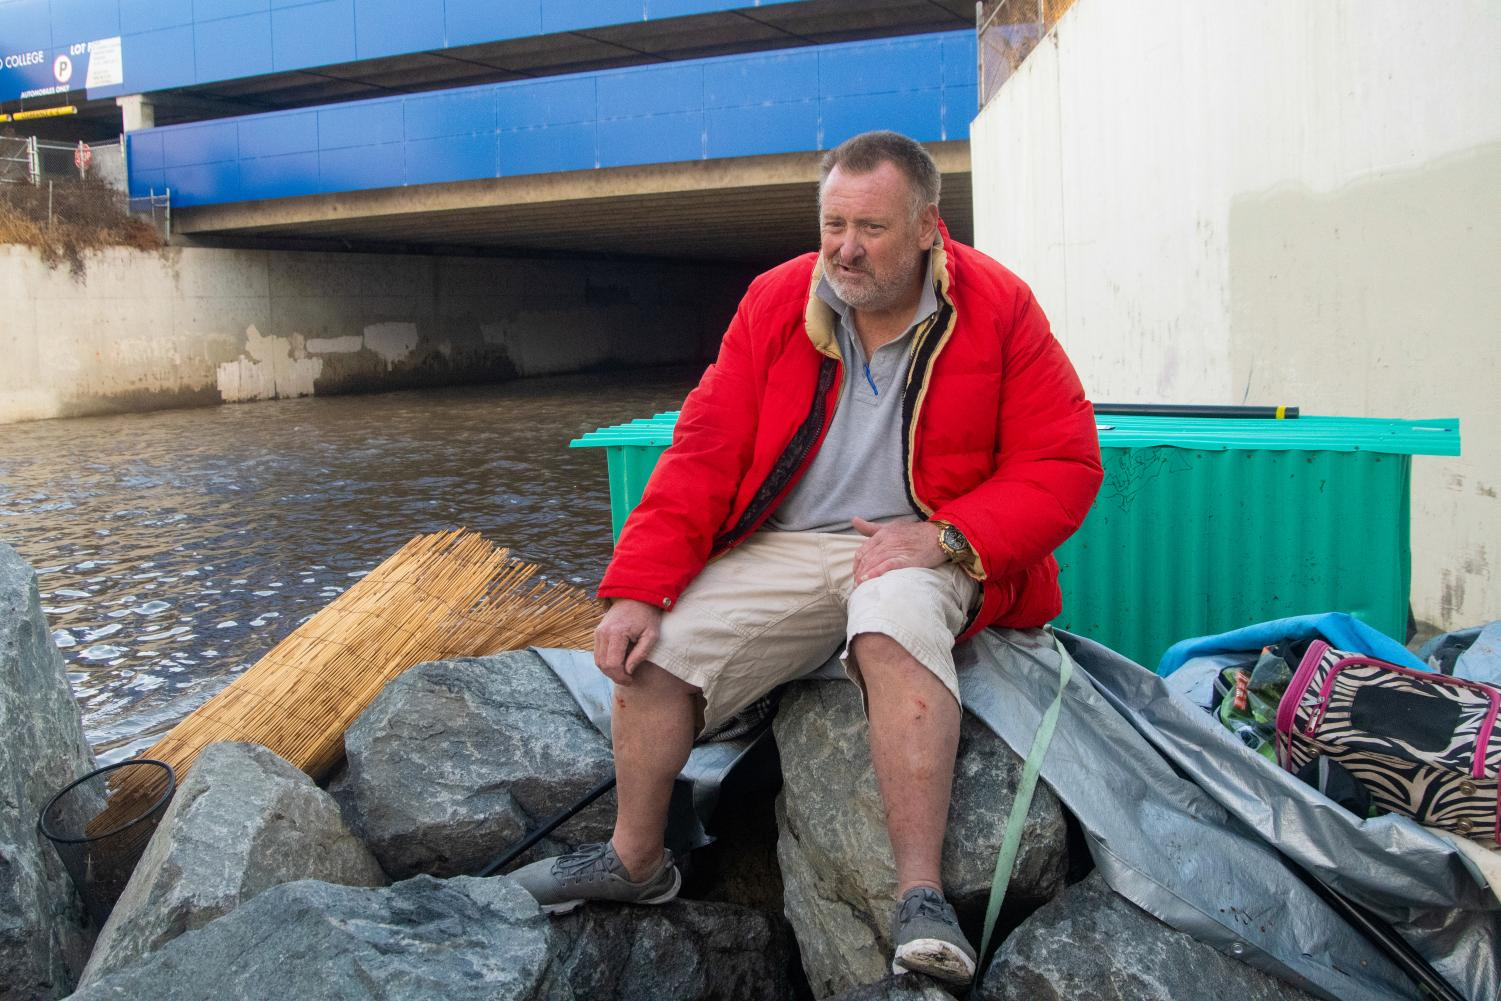 Tim Warren, 58, a Dominguez Channel resident, faces danger due to the flooding caused by a rainstorm Wednesday, Nov. 20. Homeless encampment residents face the increasing risk of accidental drowning as one encampment resident drowned in 2017 as a result of surging water levels during a storm.